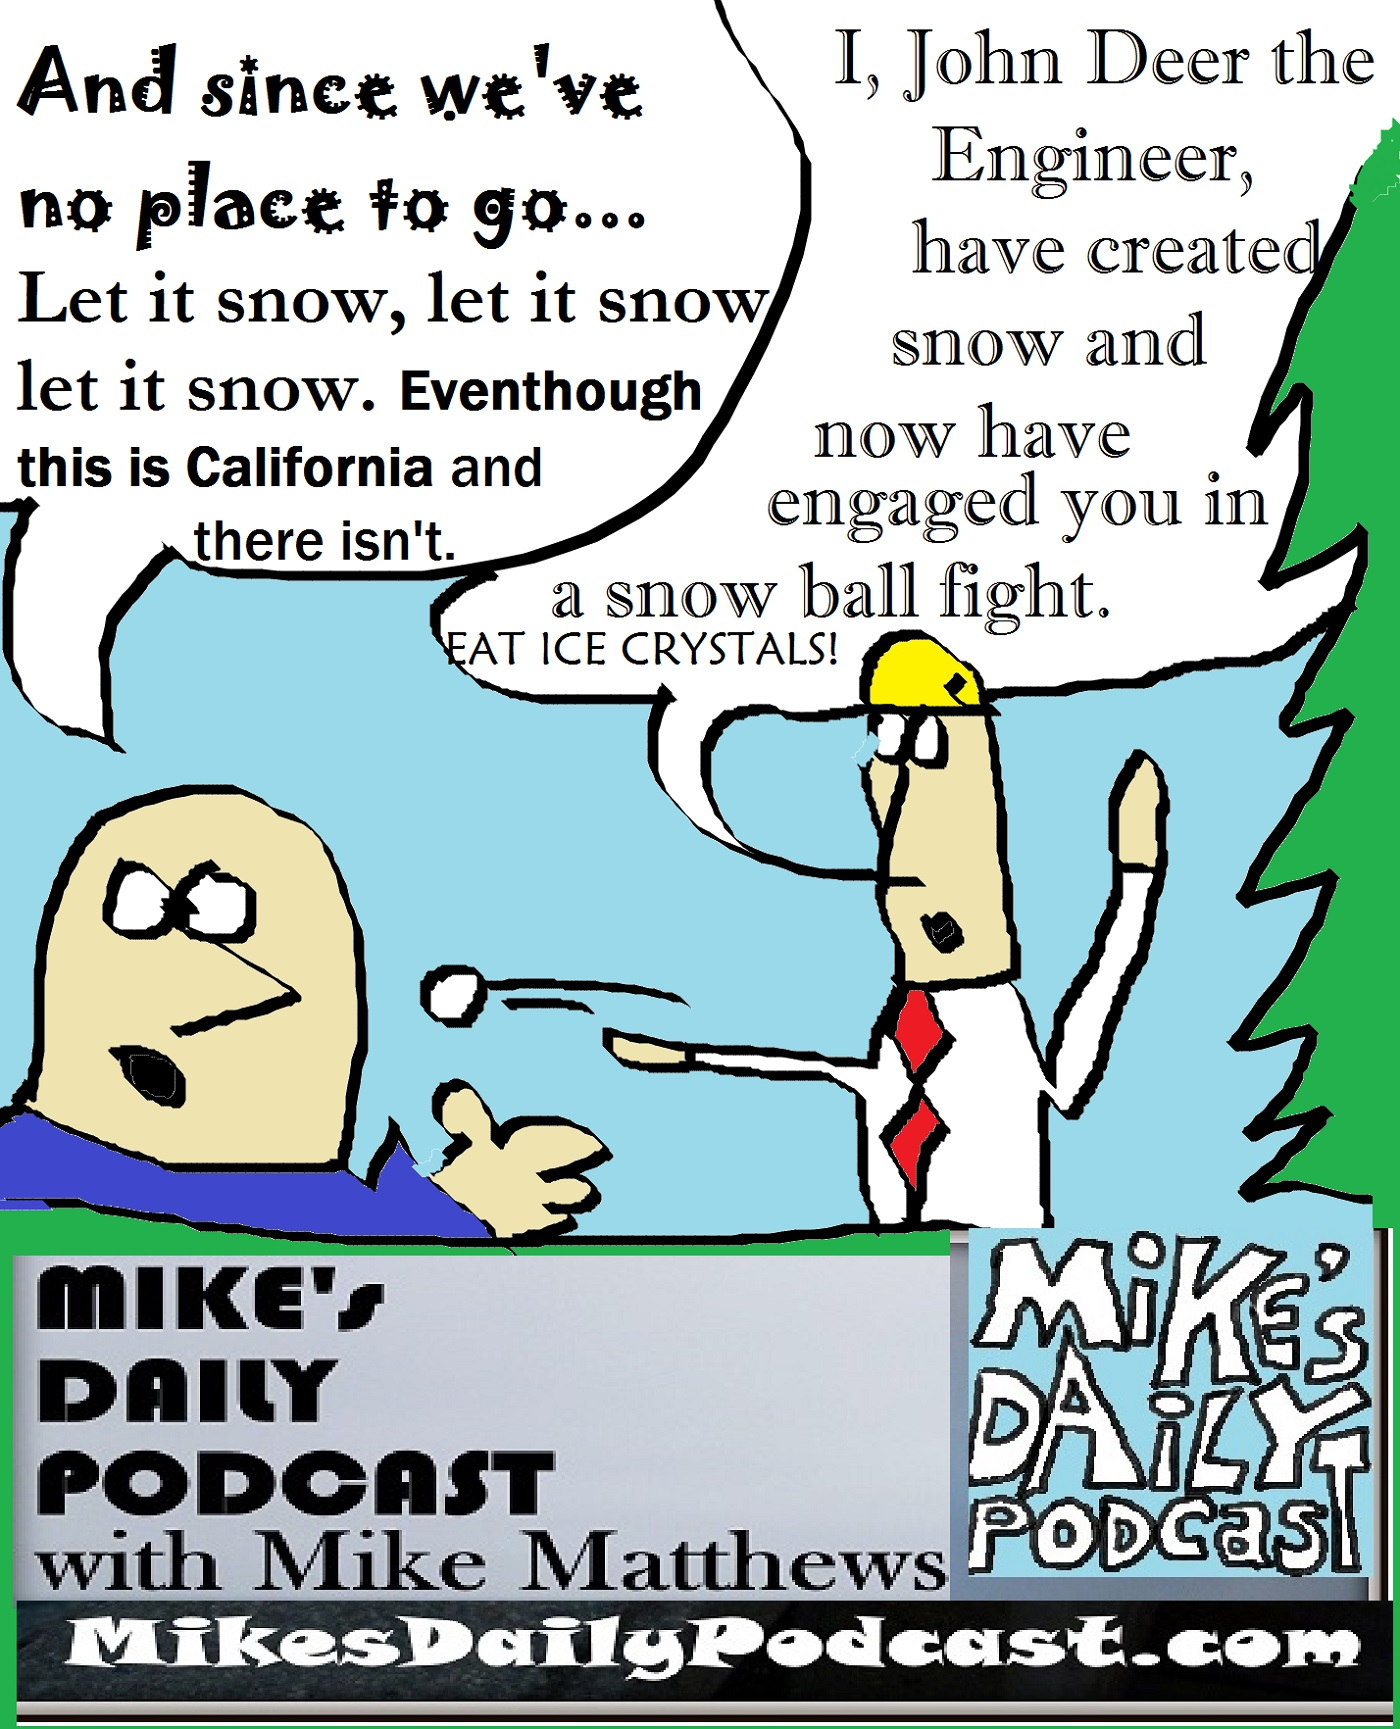 mikes-daily-podcast-1232-snow-fight-john-deer-the-engineer